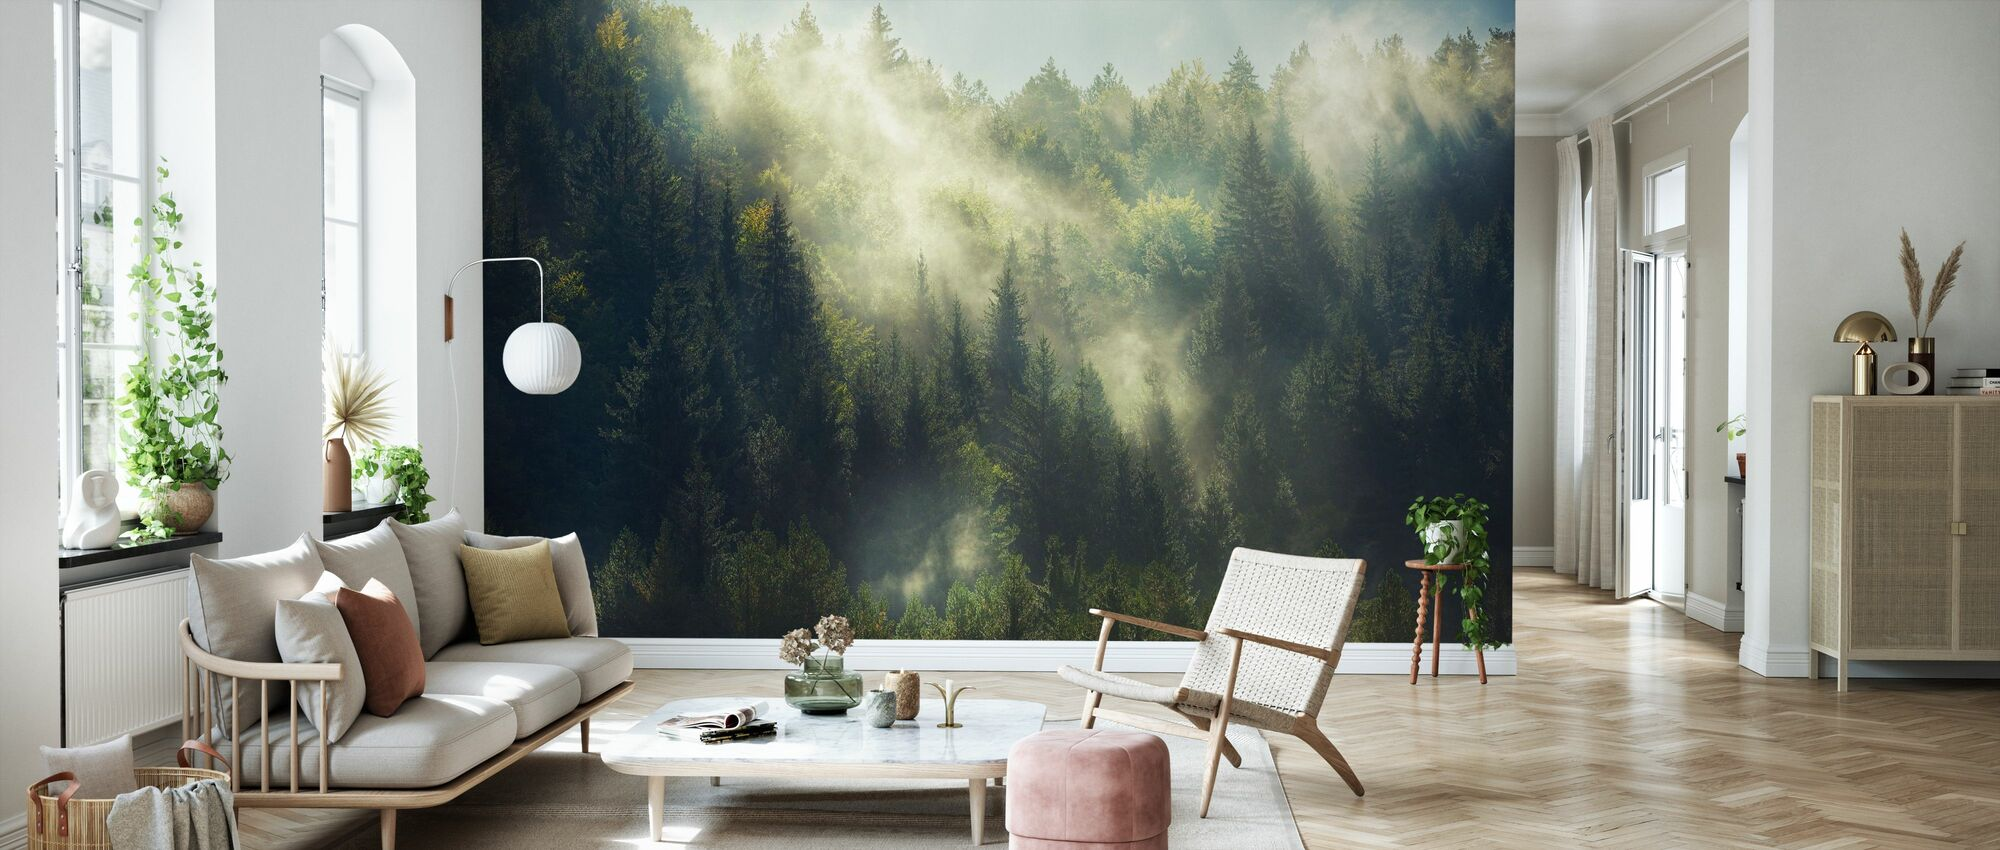 Misty Forest - Wallpaper - Living Room